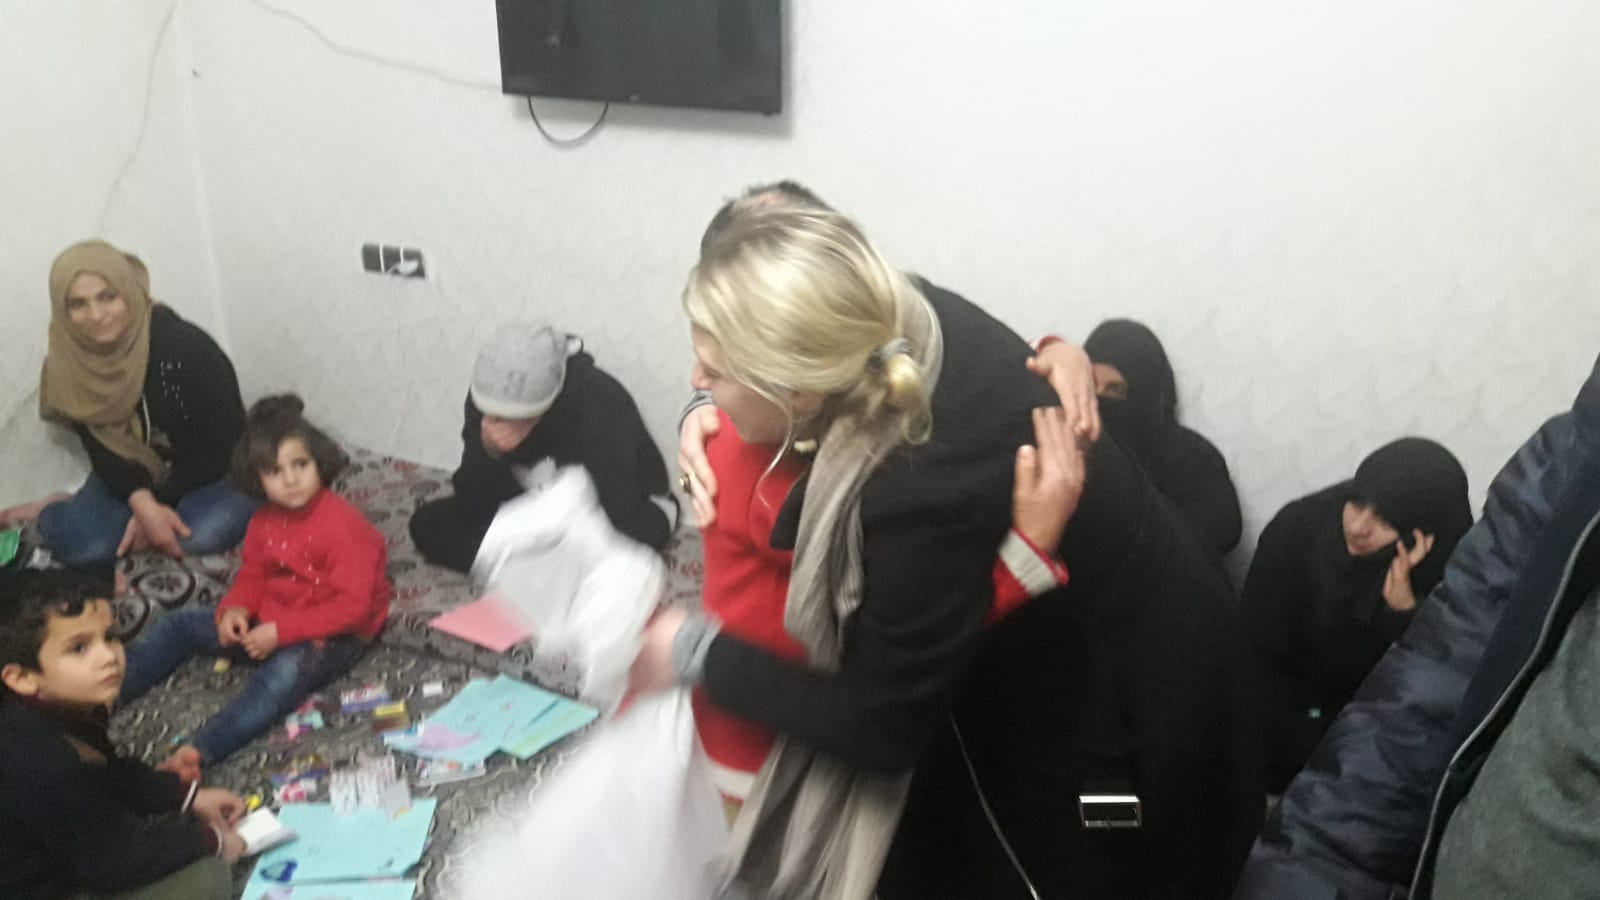 SETF outreach director, Natalie, receives a hug from Fatima at the Rehab Center in Turkey. Fatima and her sister, Diana, were severely burned after their internally displaced camp was bombed by the Assad Regime. They have been at the Center for at least two years and we have become close to these angels.